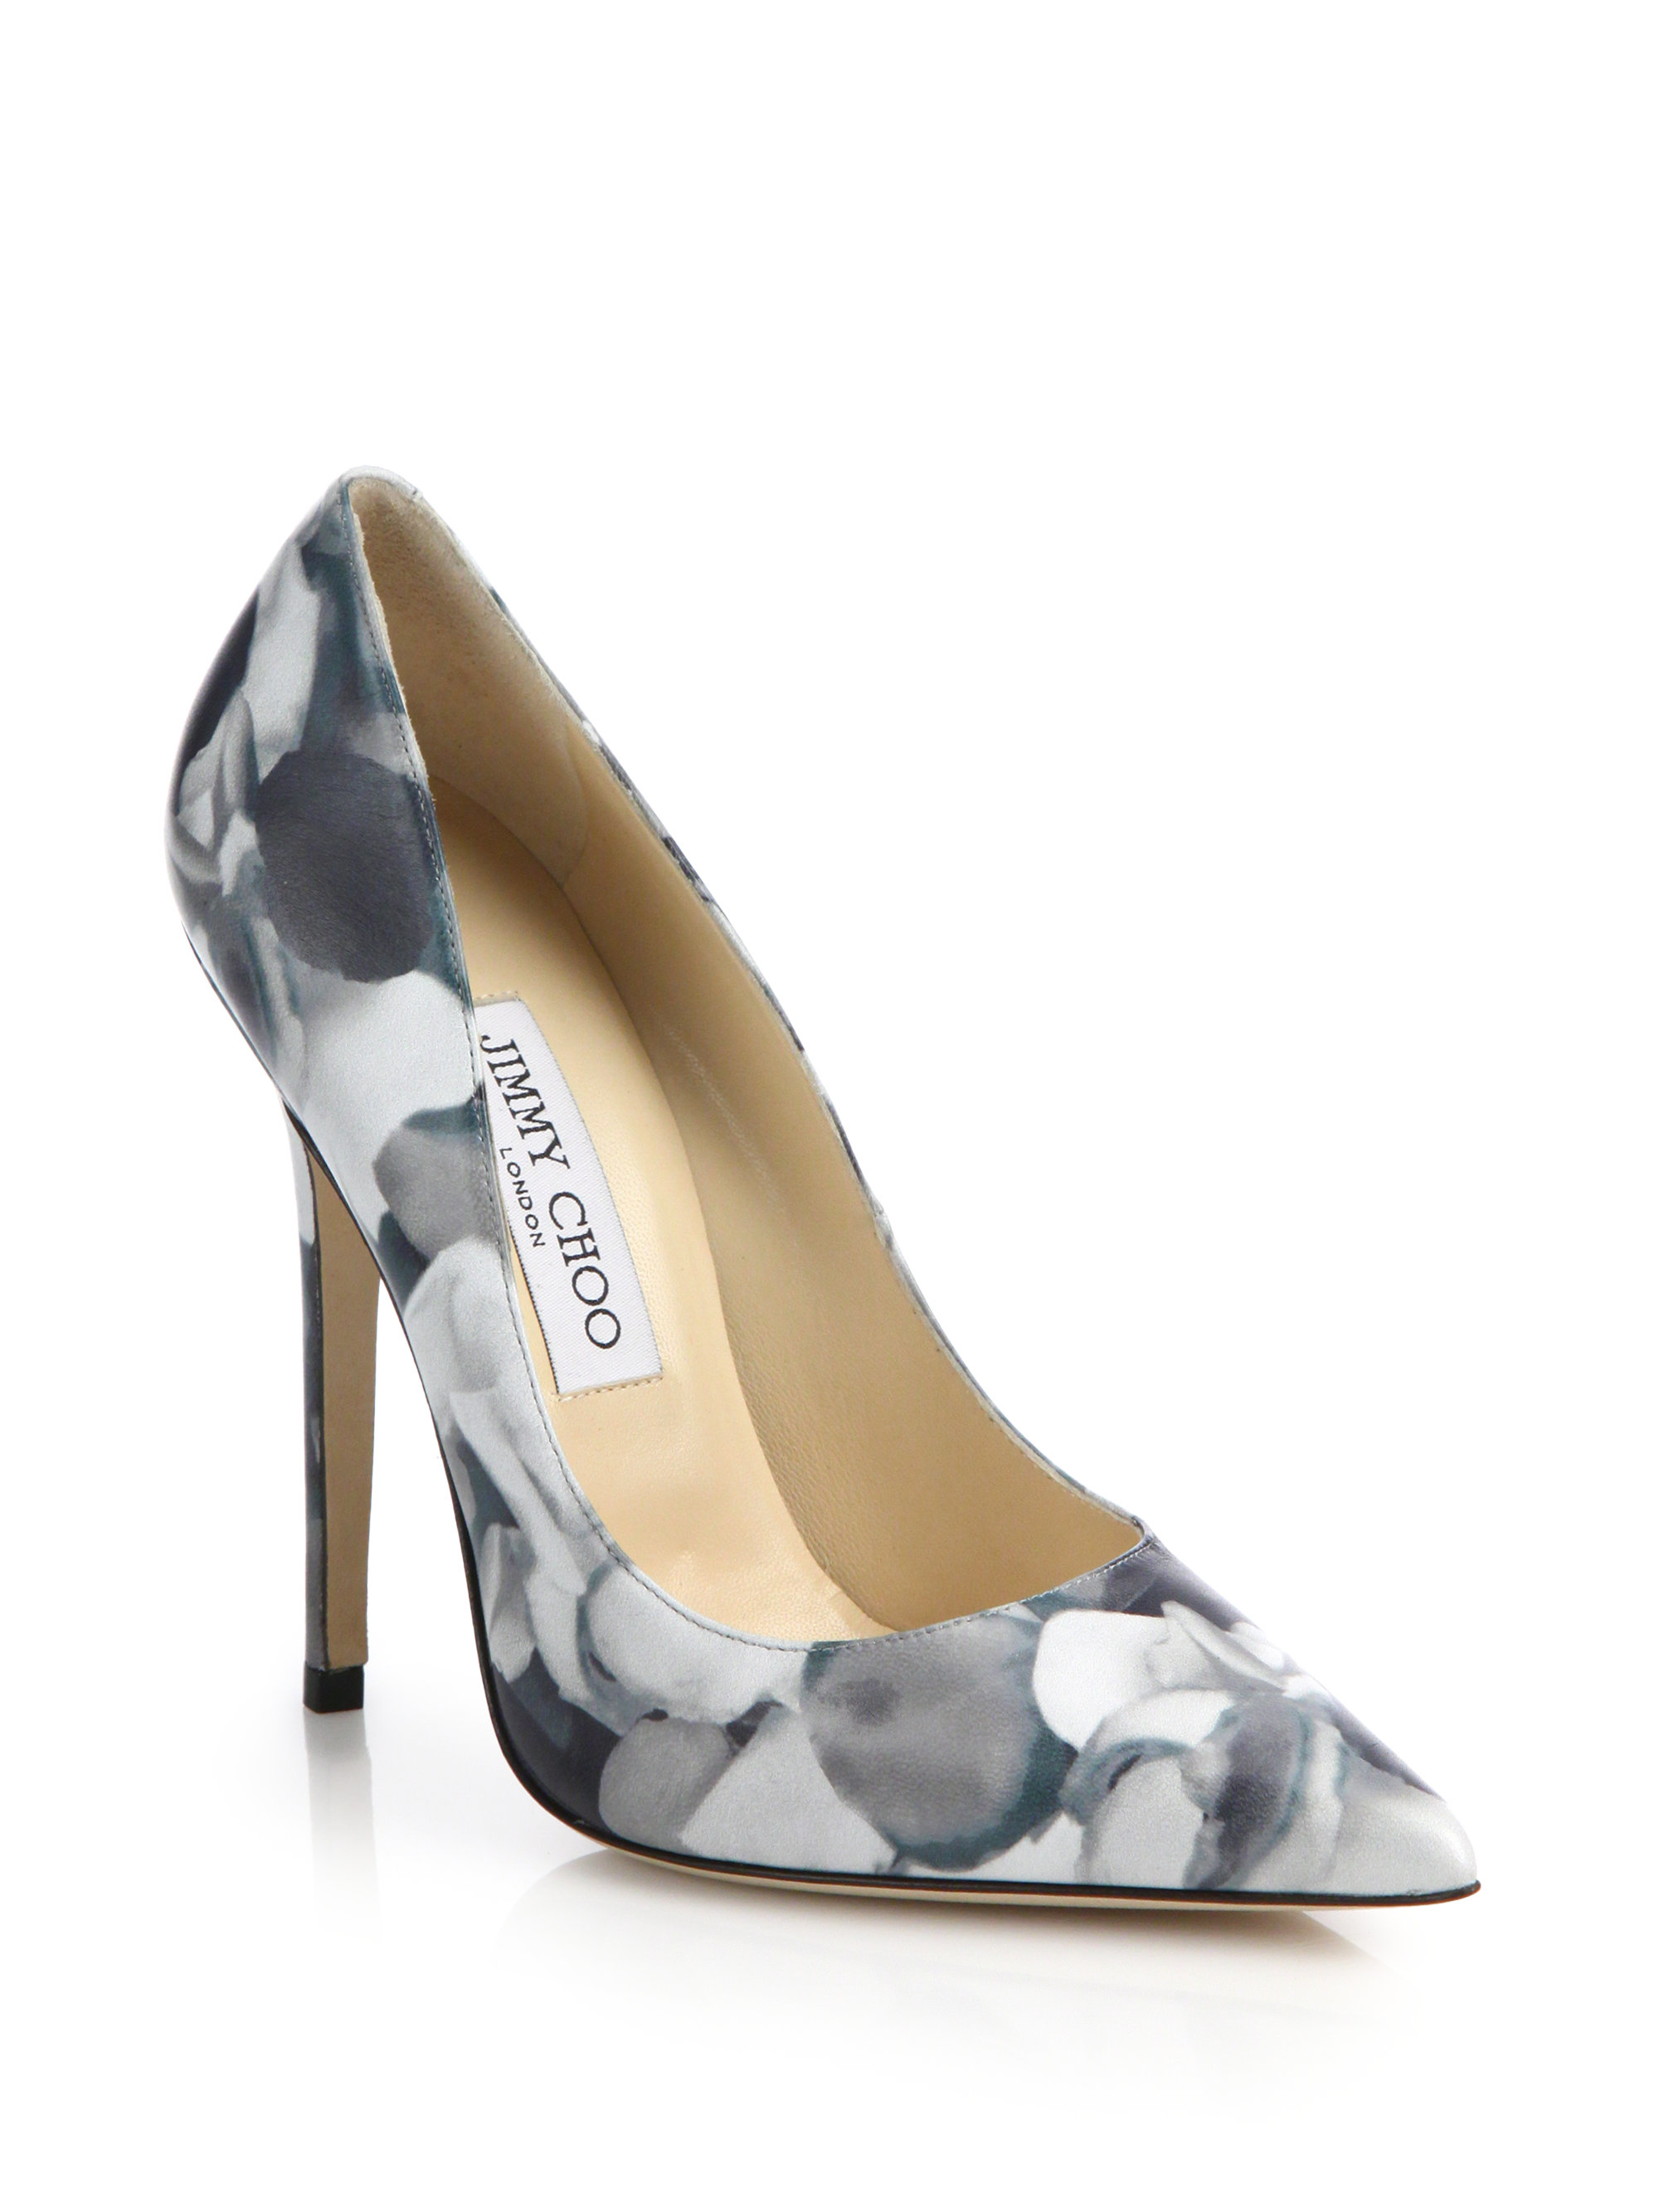 0e9f14be5e06 Jimmy choo Anouk Floral-print Leather Pumps in Blue